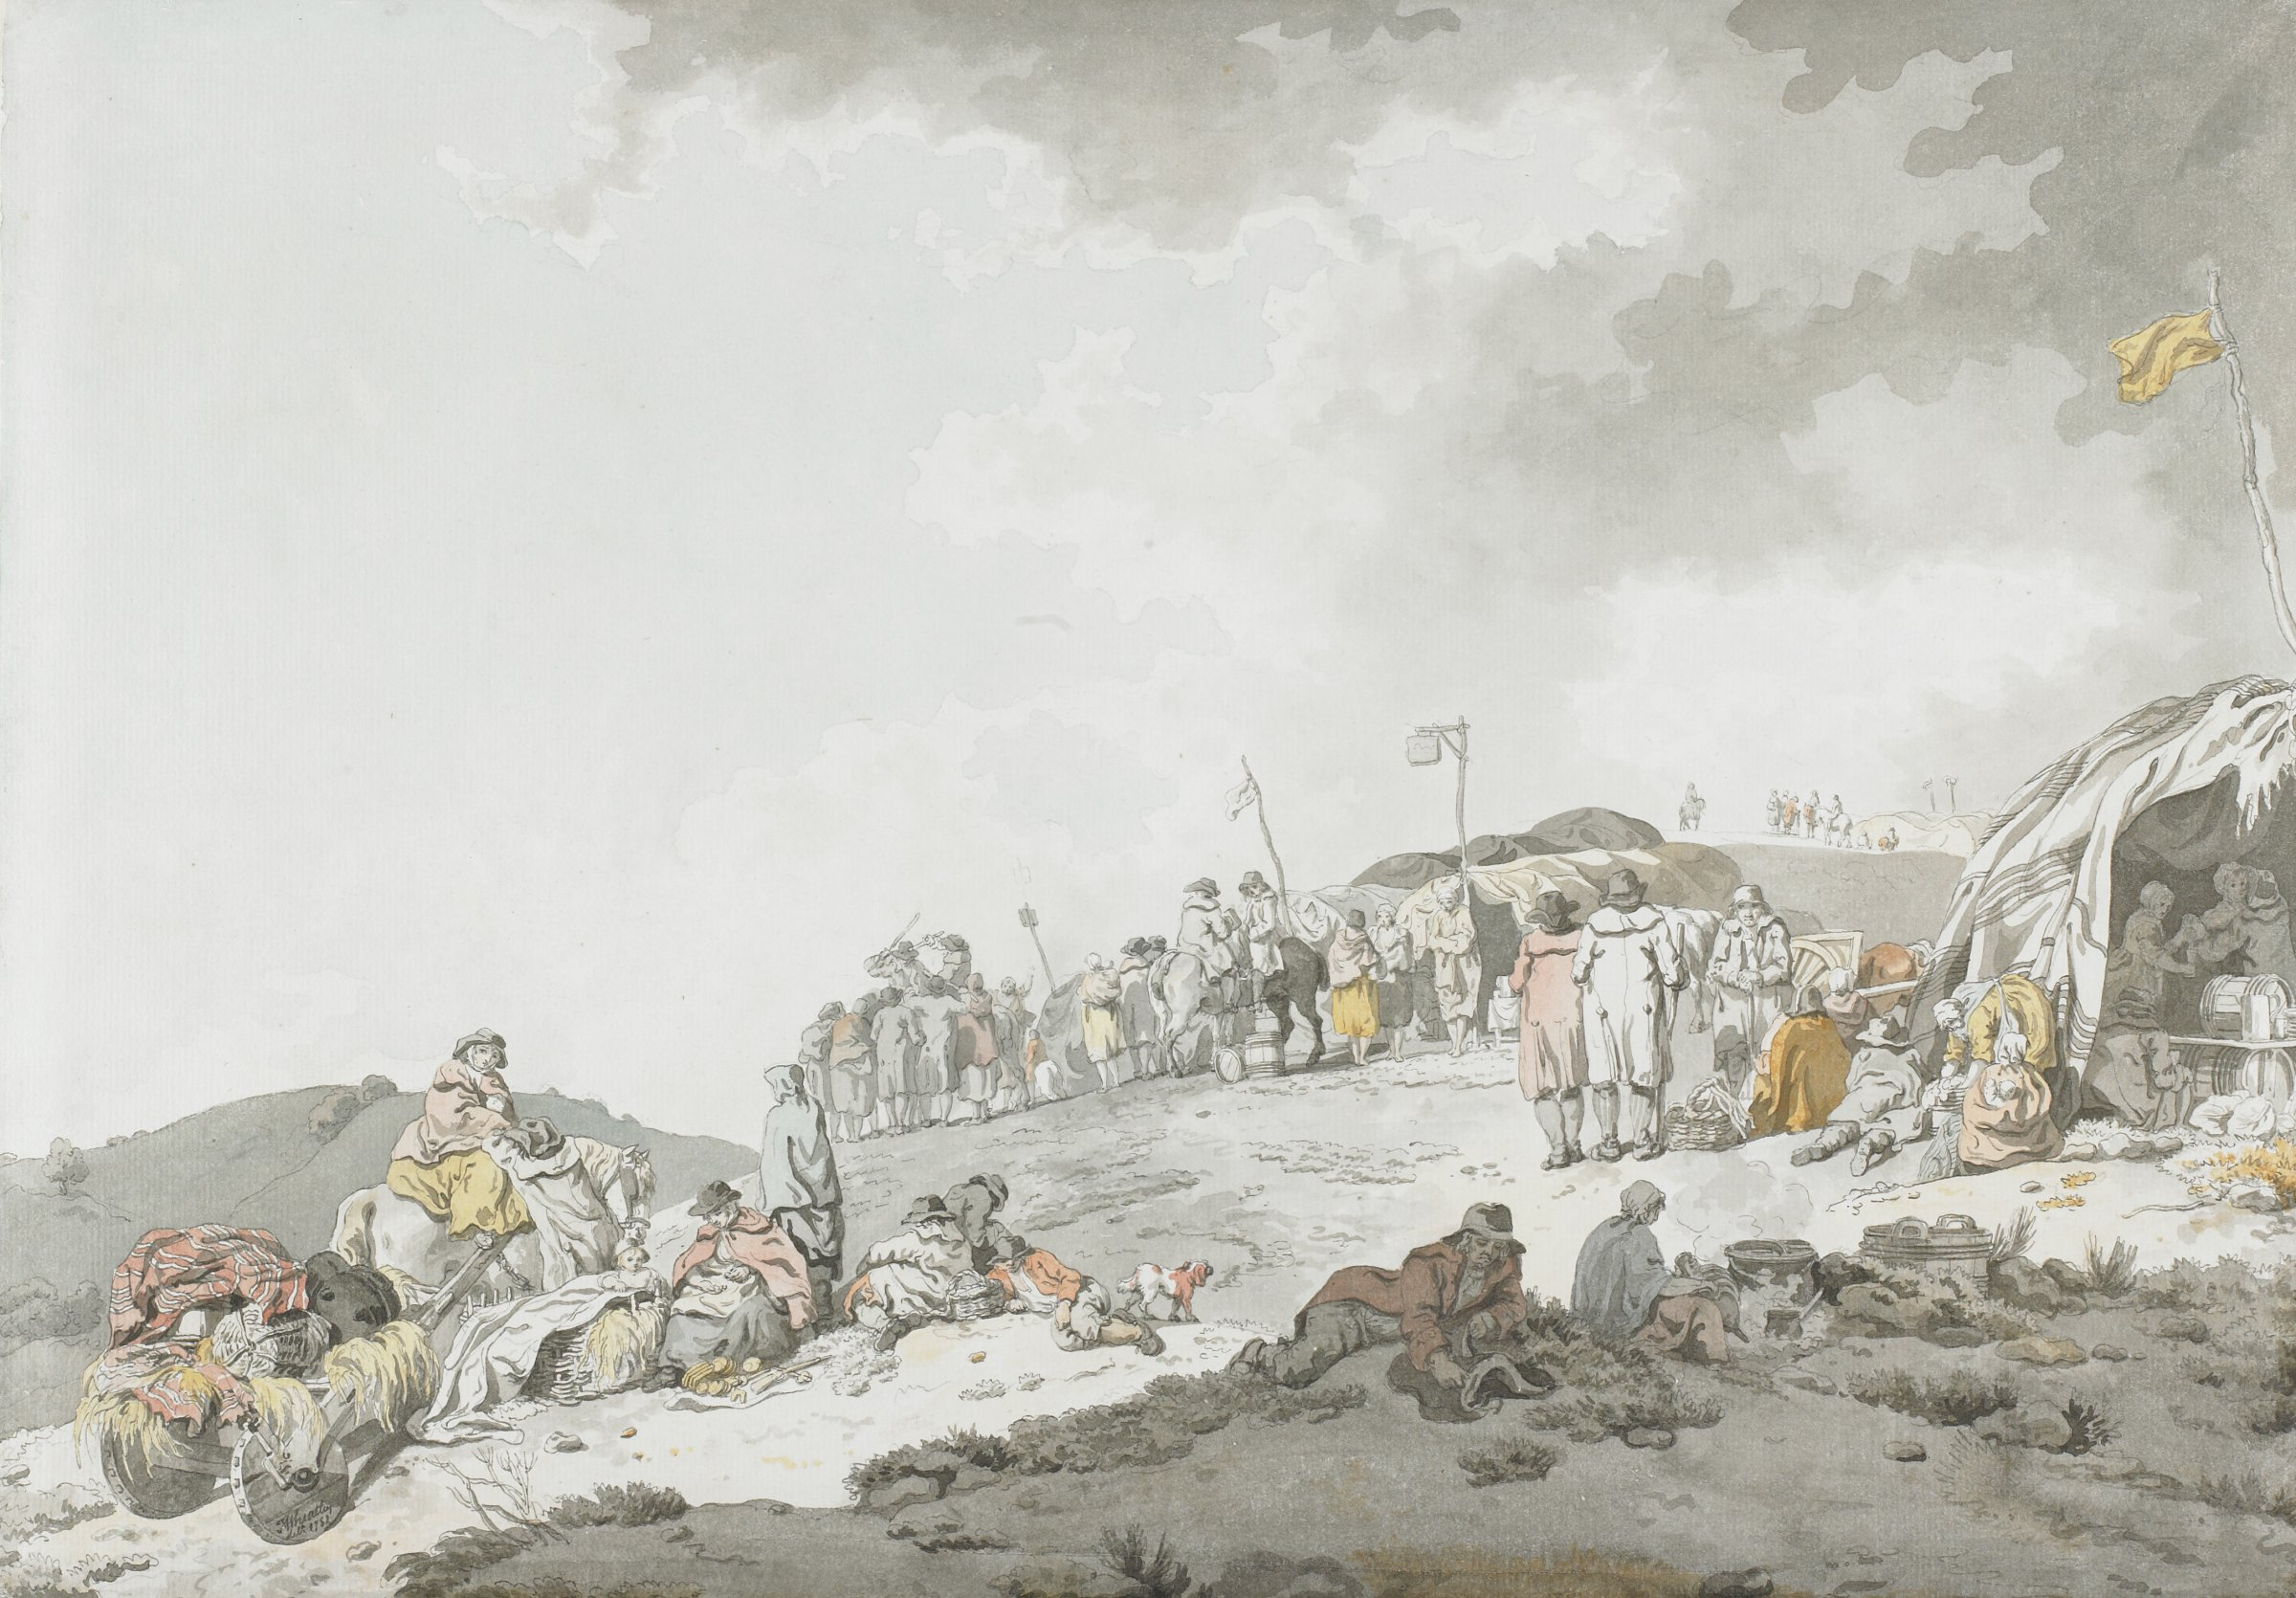 A bare landscape with hillocks is populated with horses and clusters of people in traveling clothes. Several tents with flags dot the landscape. Pale washes of color pick out clothes worn by the travelers; the image is otherwise dominated by gray washes and a low, pale skyline.